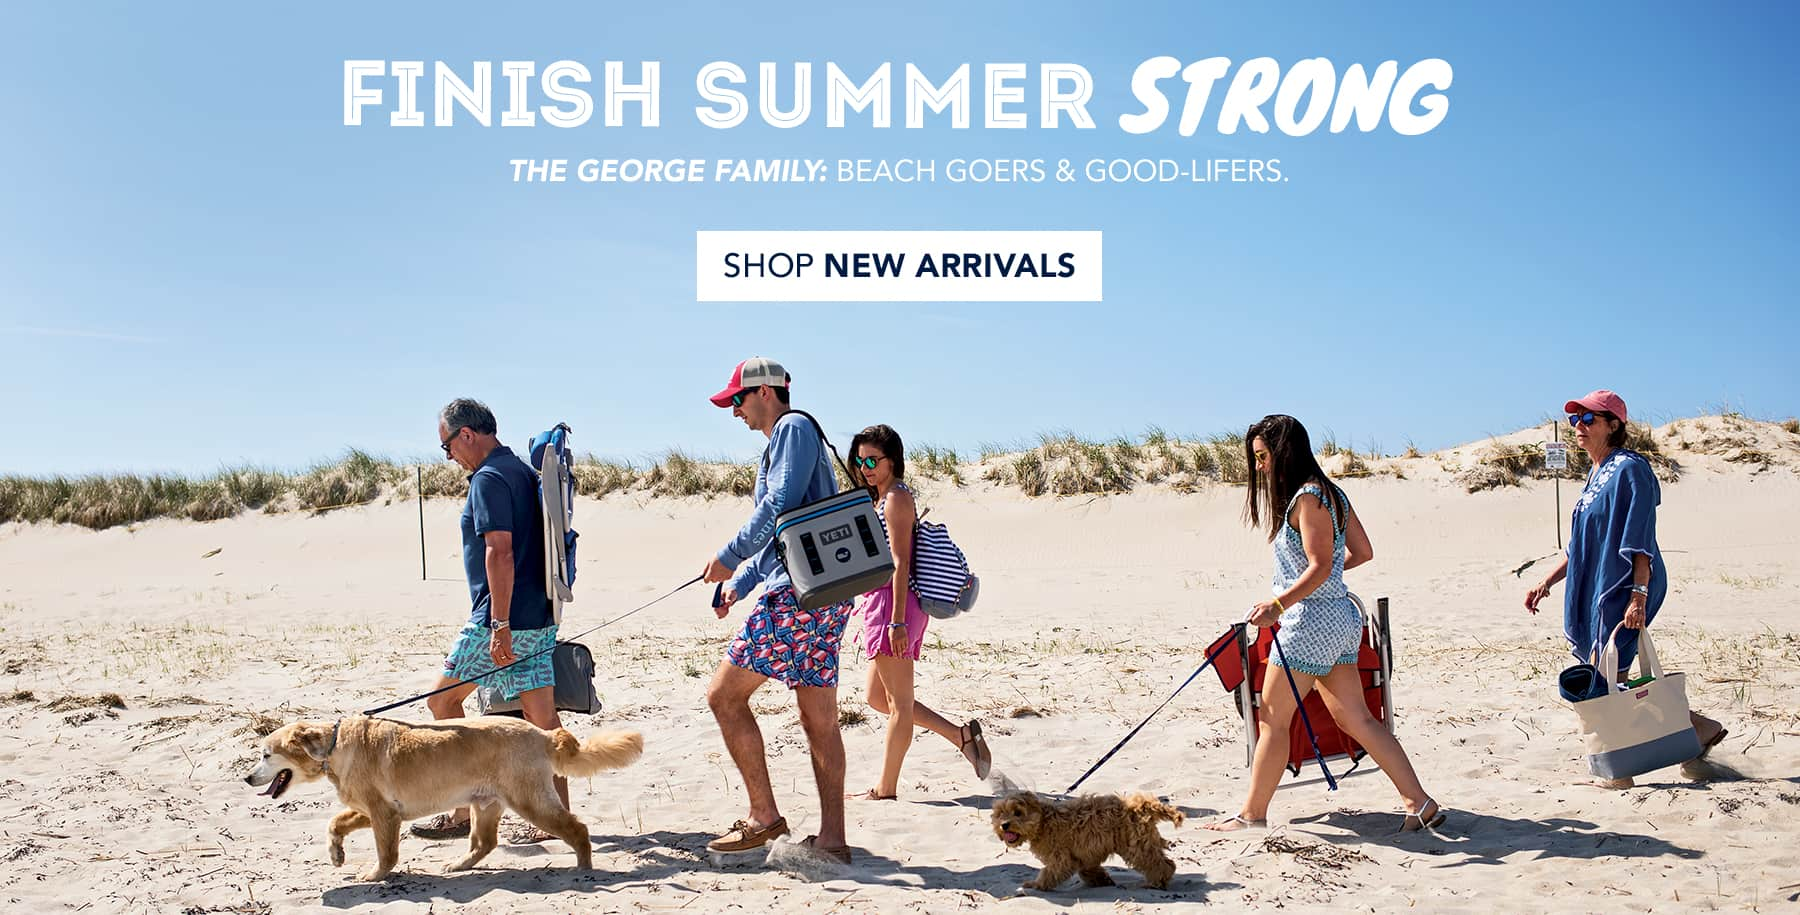 Finish Summer Strong. The Georges Family: Beach Goers & Good-Lifers. Kelly & Caitlin are vineyard vines teammates... and sisters! Shop New Arrivals.